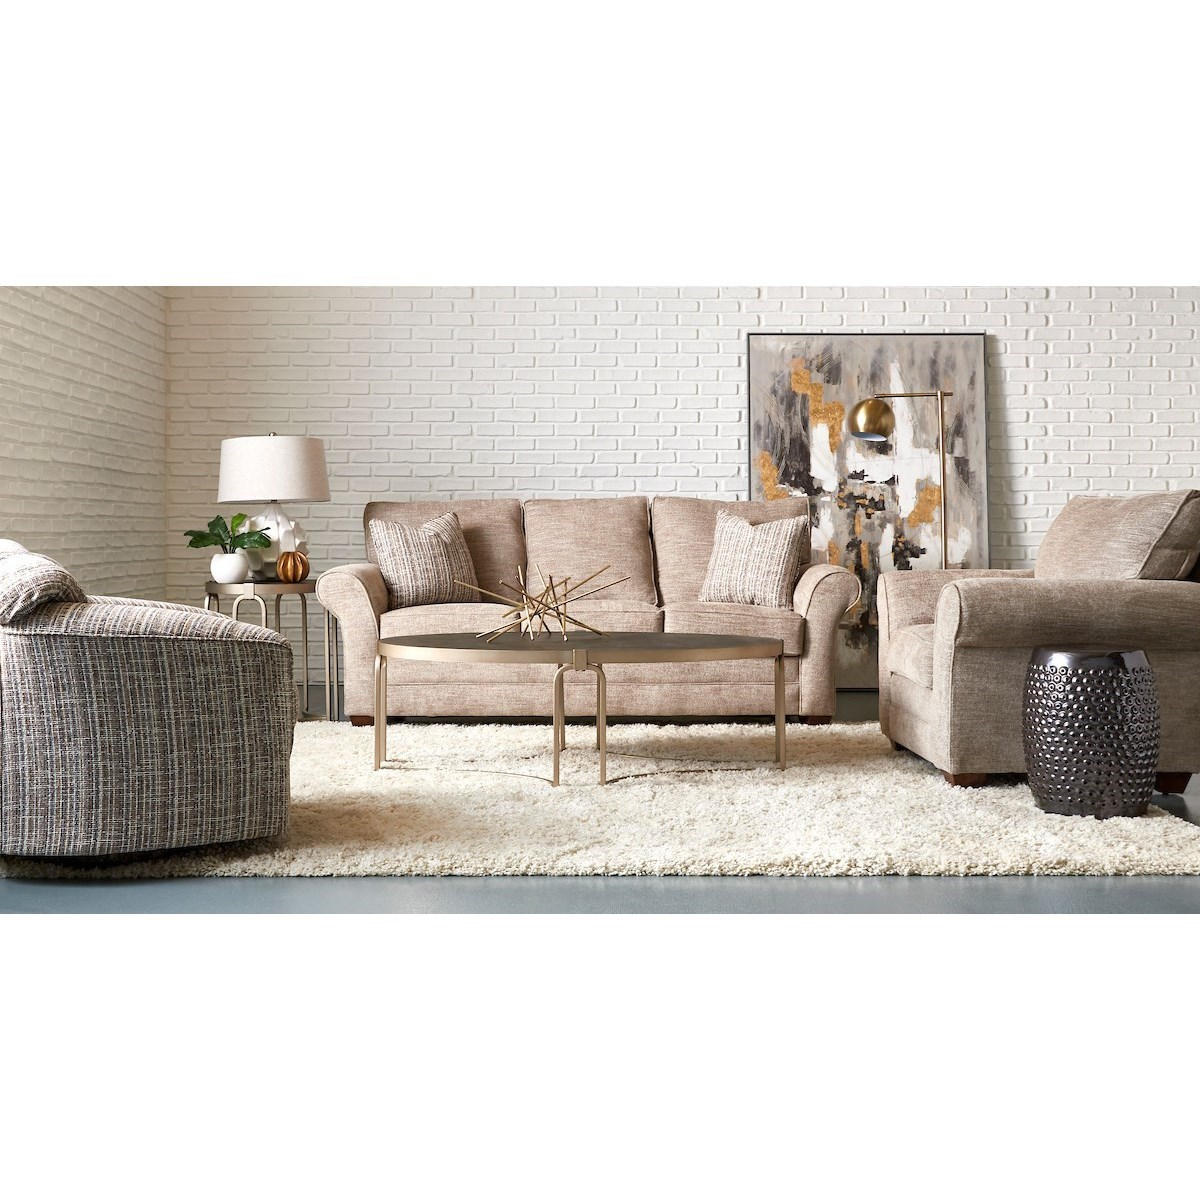 Zack Living Room Group by Klaussner at Godby Home Furnishings